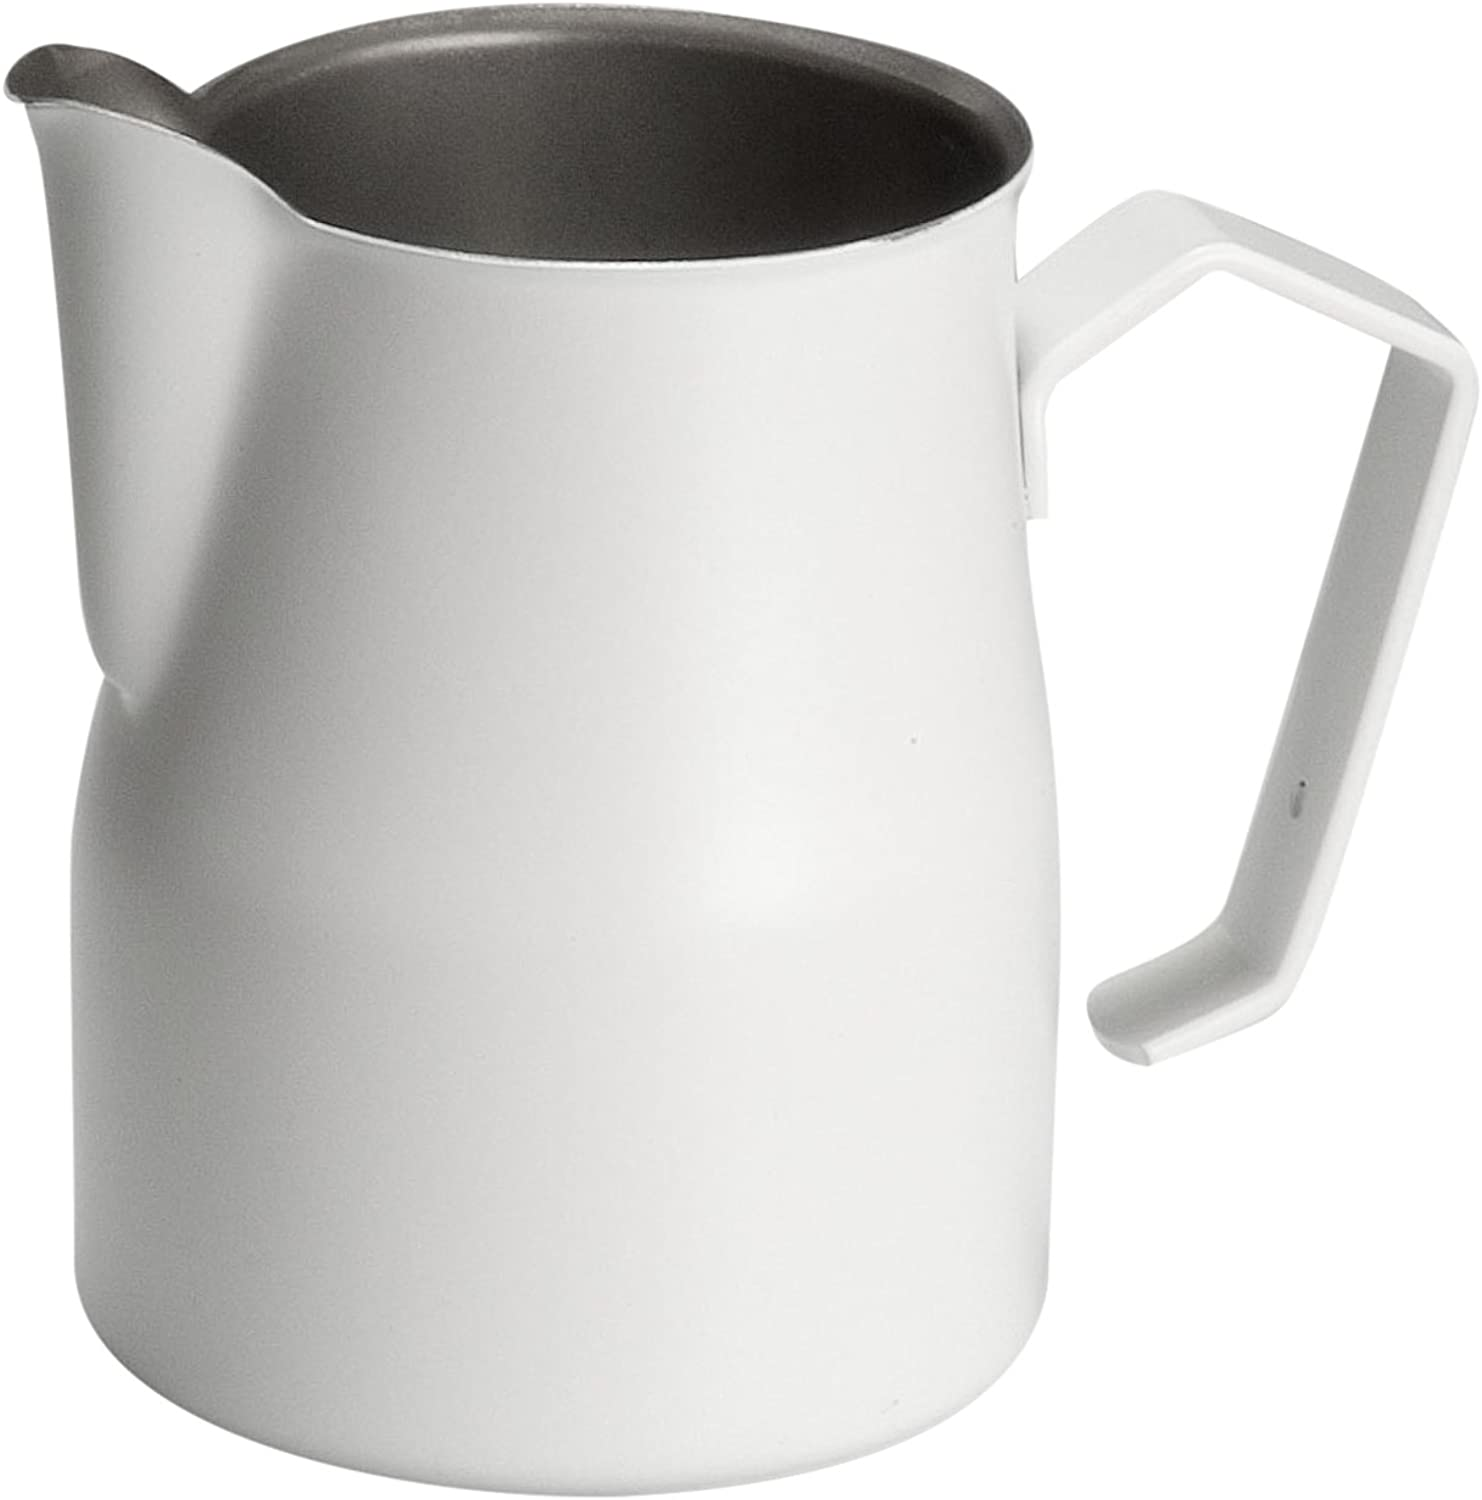 Stainless White Ounce, Fluid 17 Jugs, Pitcher Milk